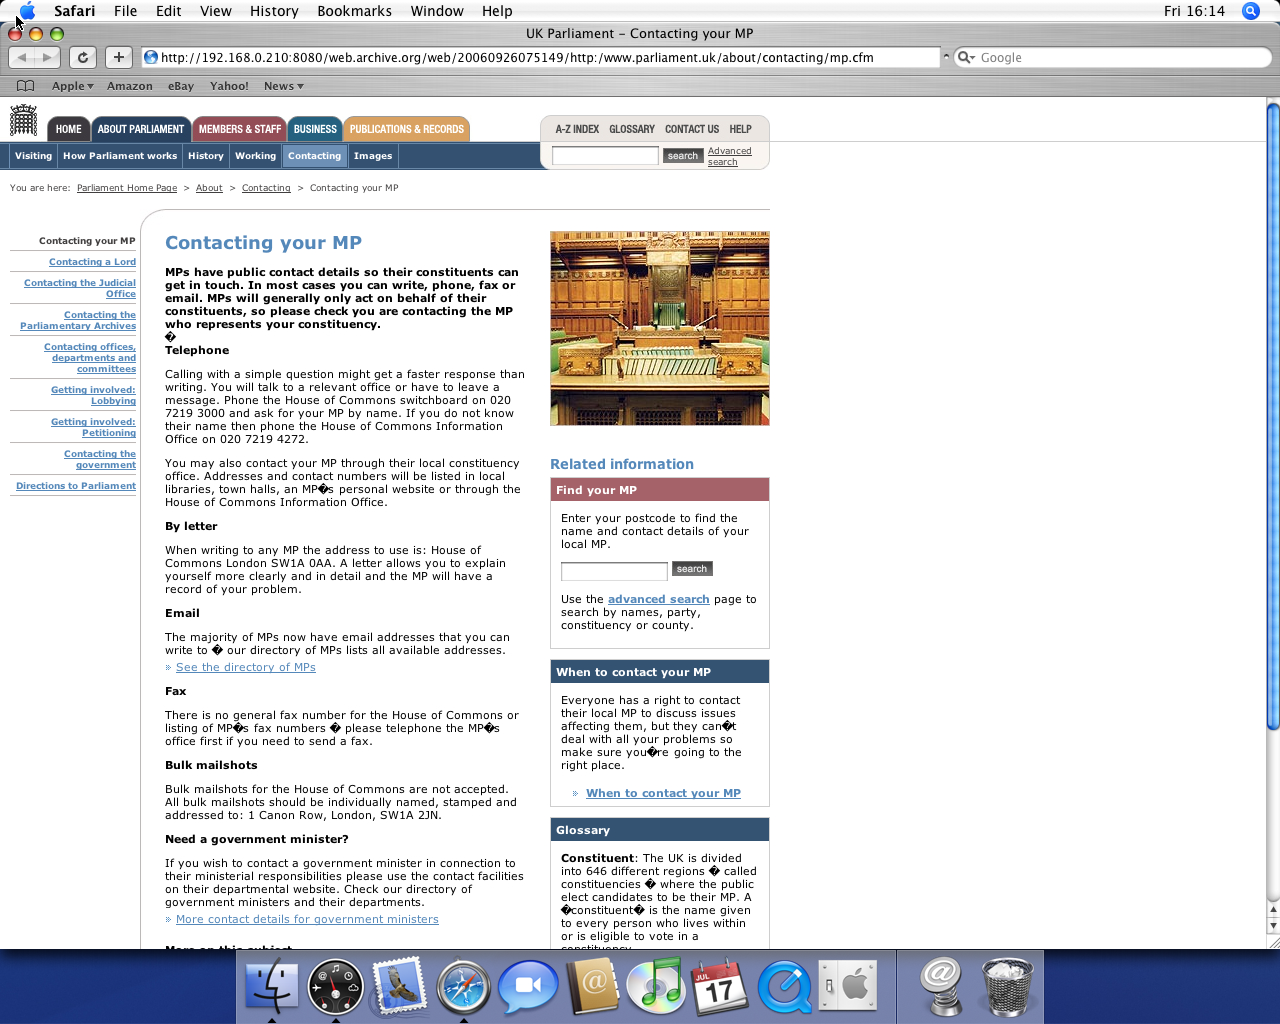 OS X 10.4 PPC with Safari 2.0 displaying a page from UK Parliament archived at September 26, 2006 at 07:51:49